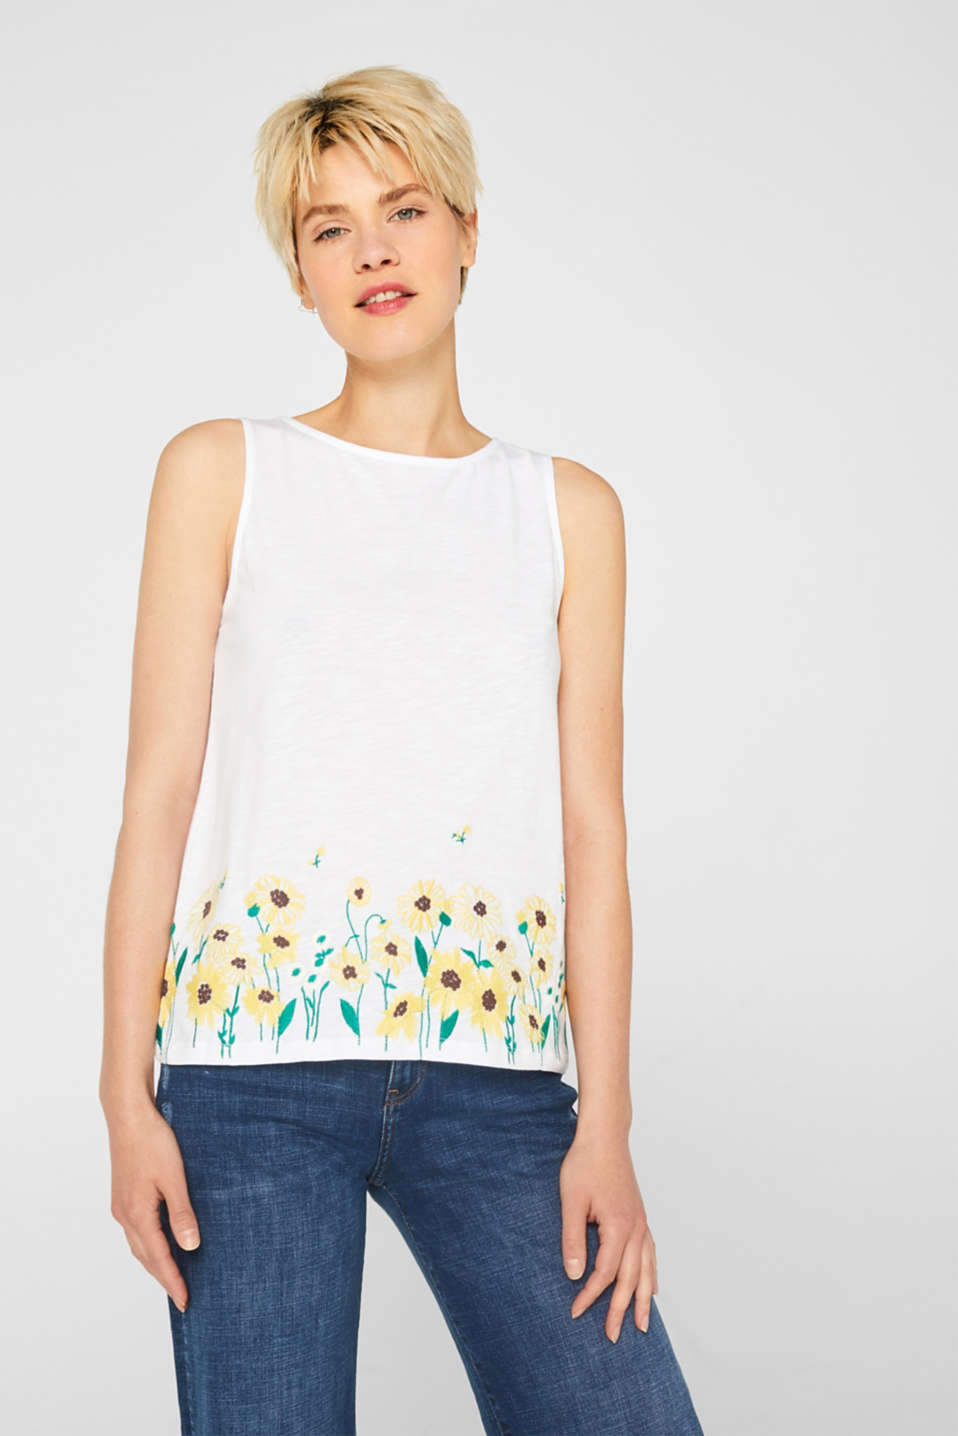 edc - Sleeveless top with floral embroidery, 100% cotton